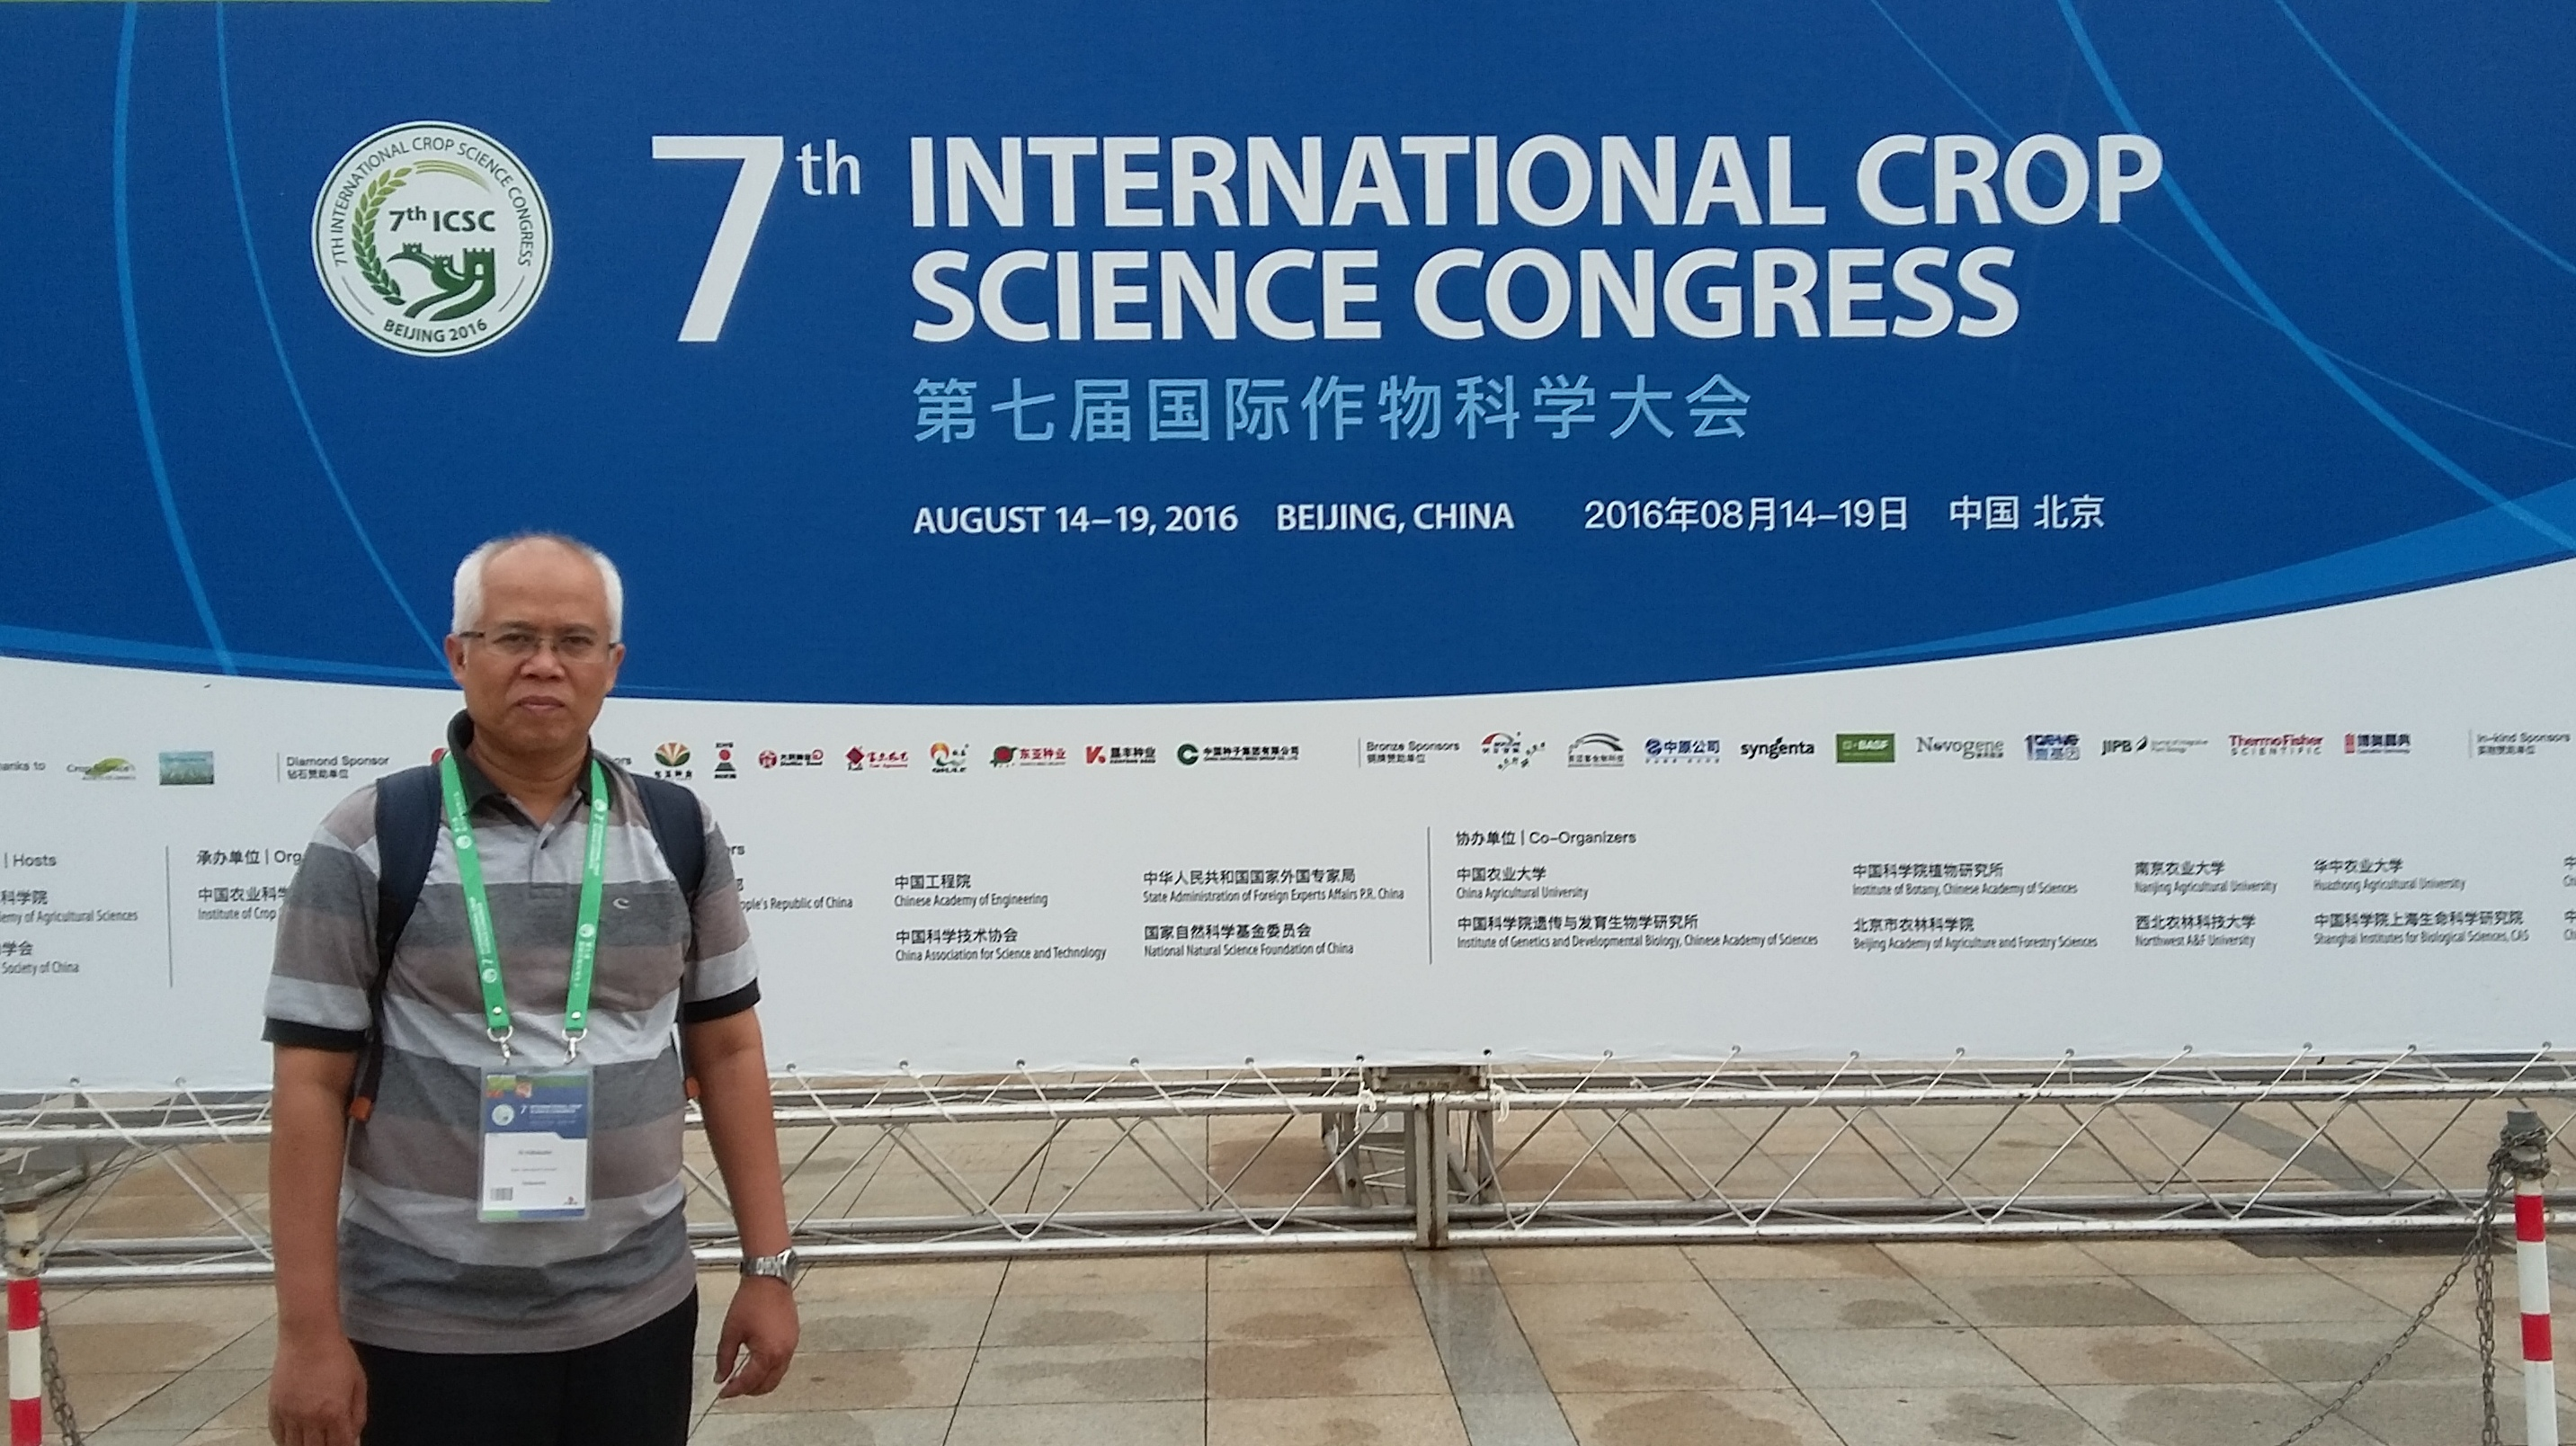 Dr. Miftahudin in the 7th International Crop Science Congress (7th ICSC) Beijing